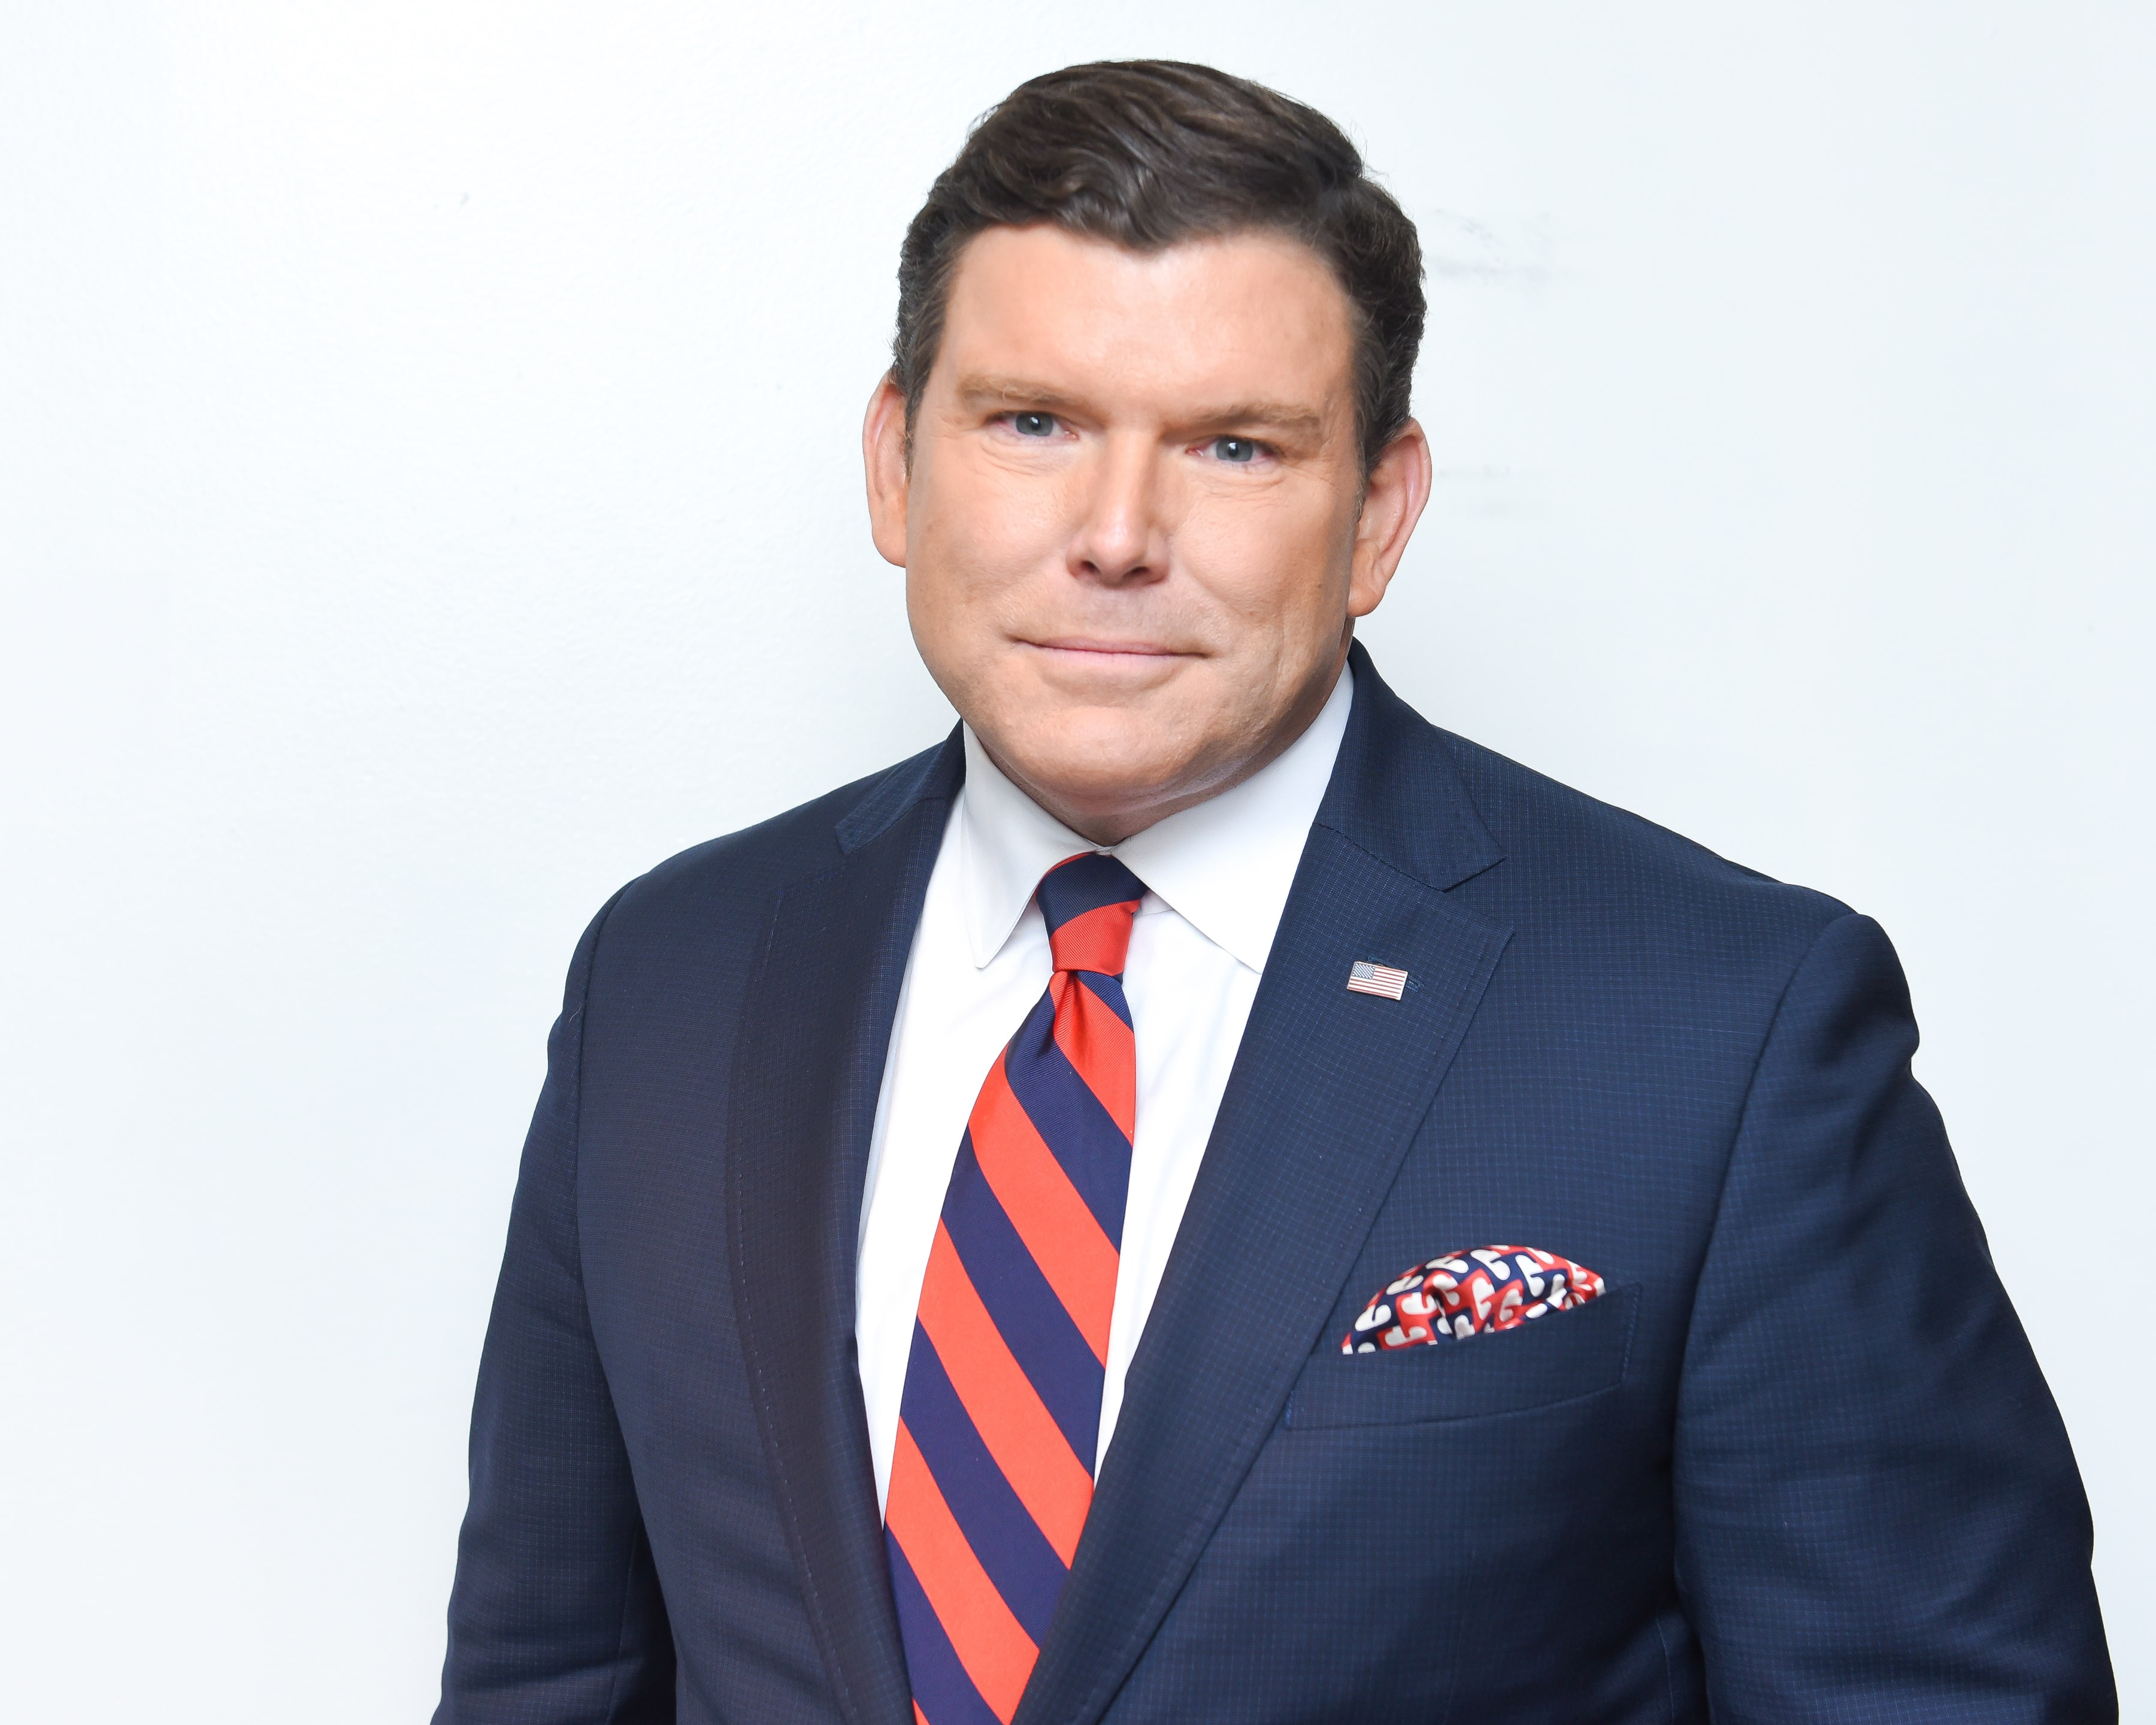 Bret Baier on 10 Years at Fox News' 'Special Report' & the